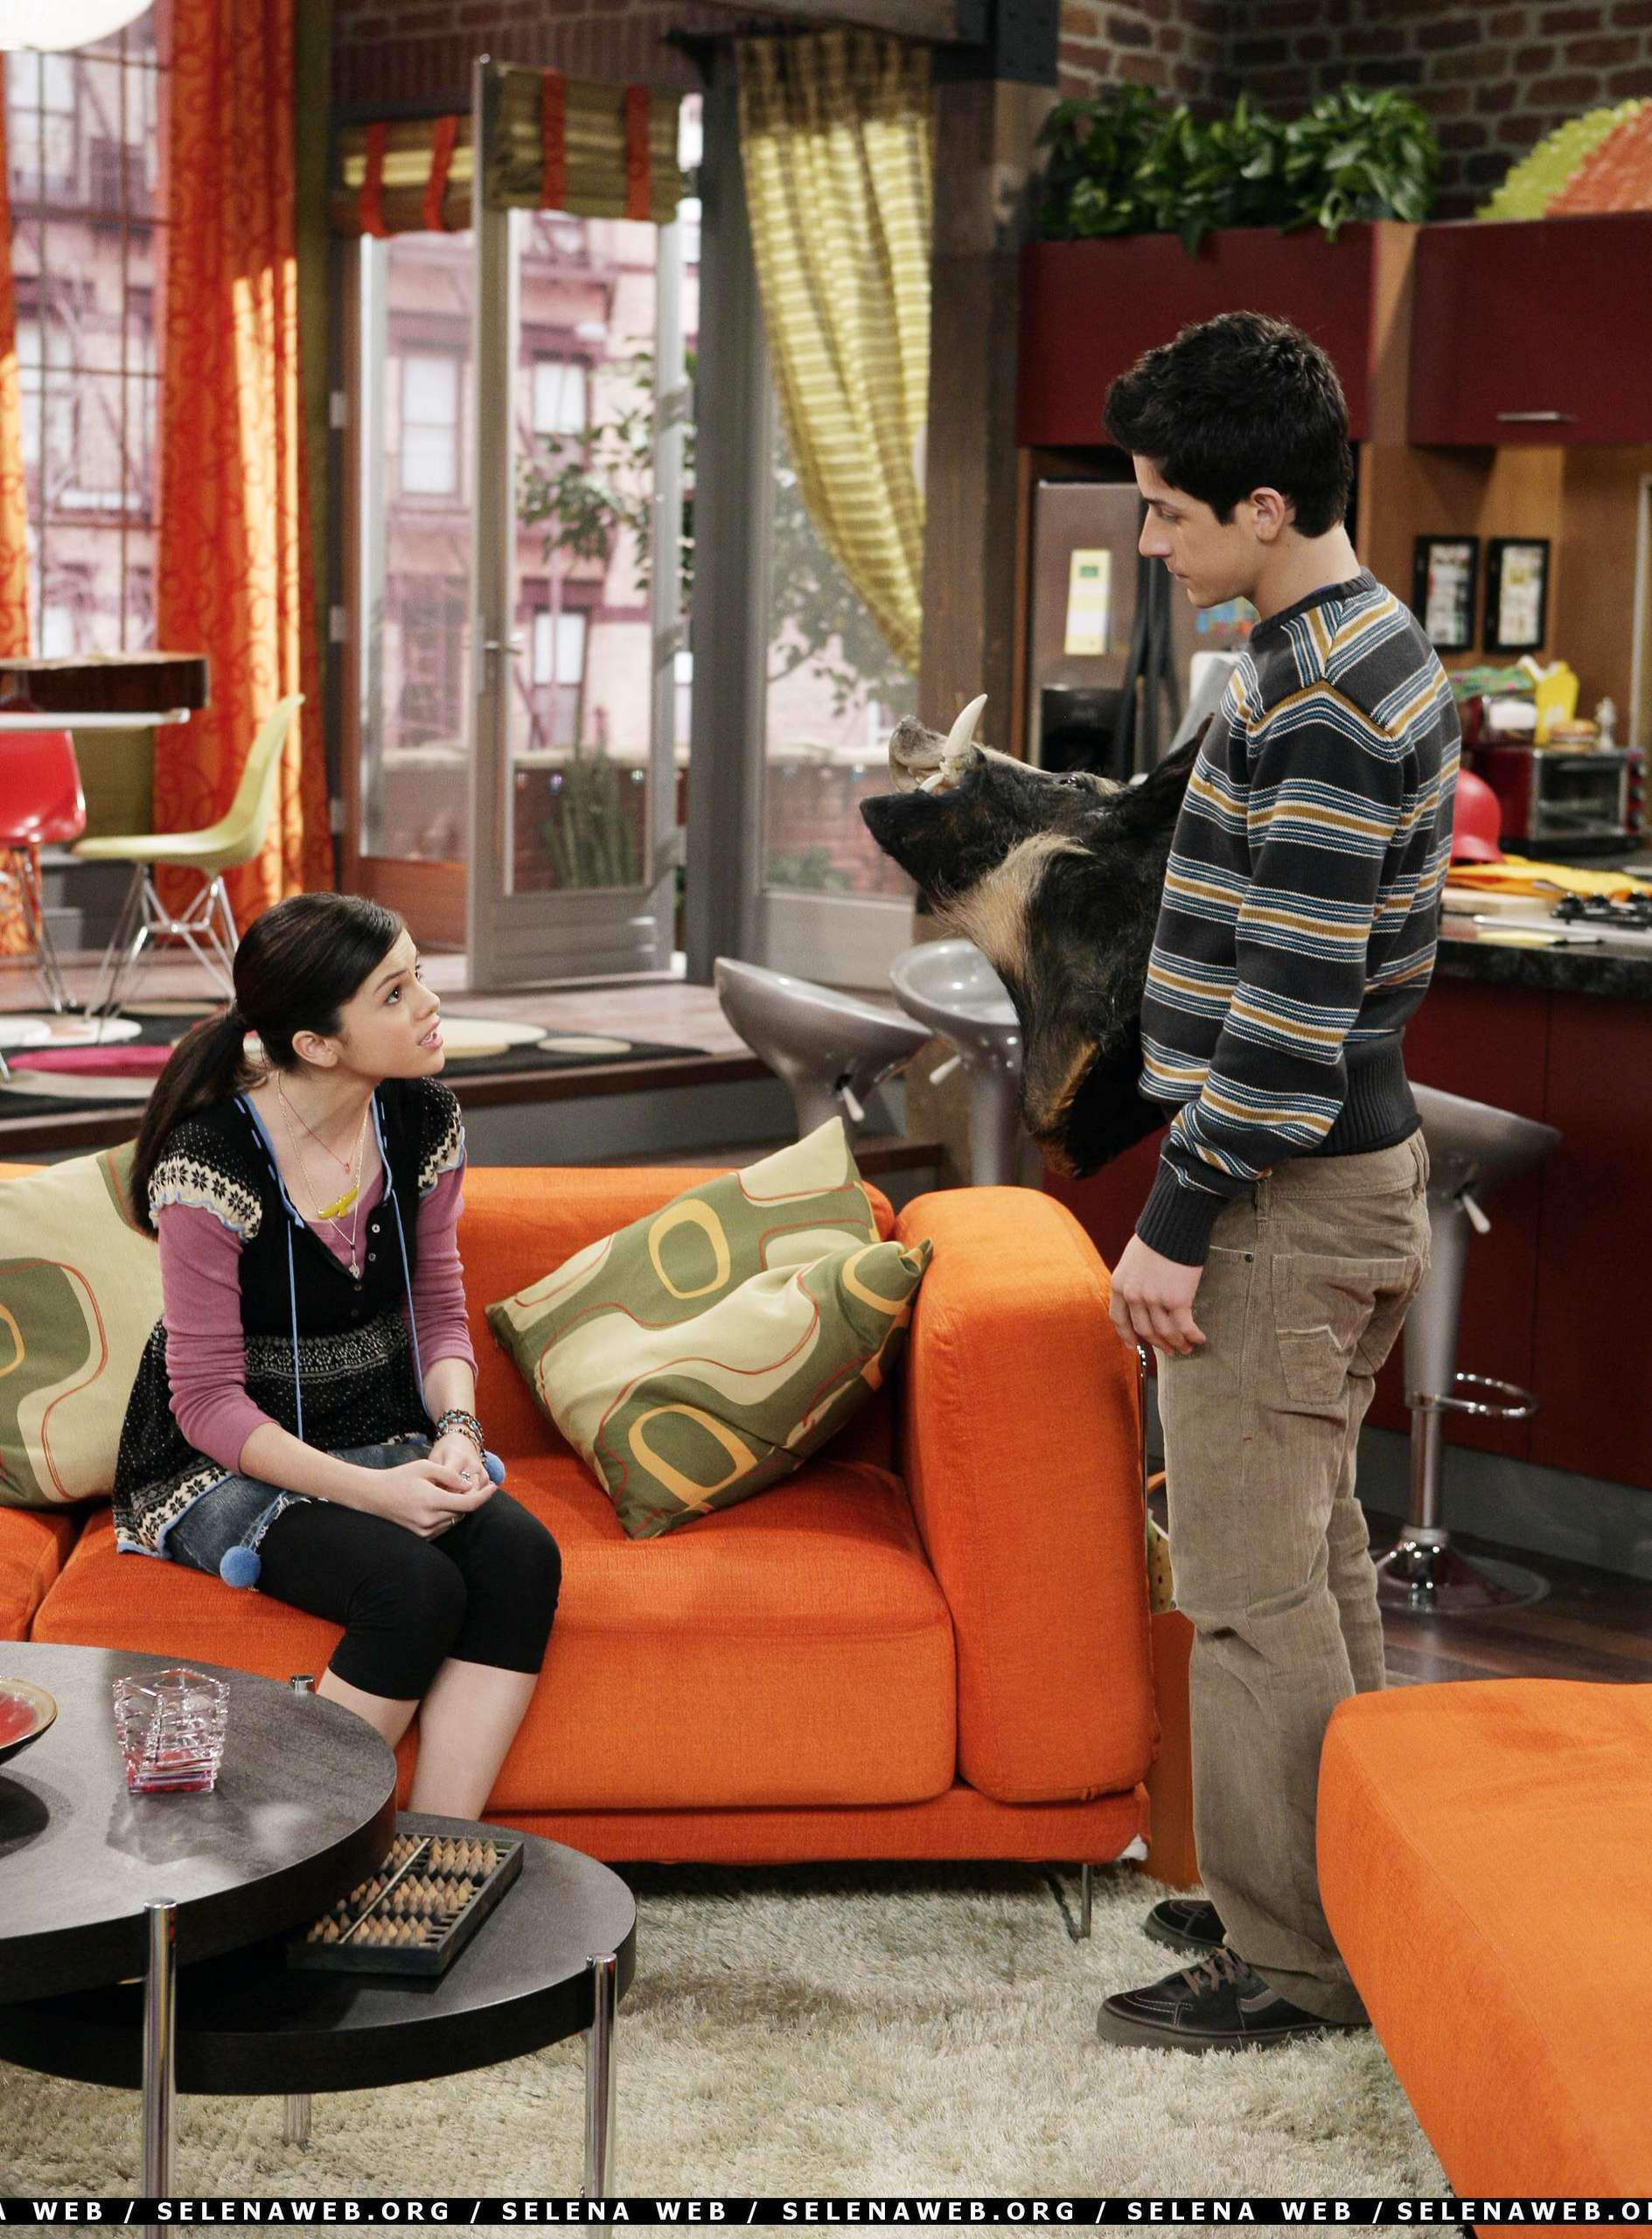 You Can t Always Get What You Carpet   Wizards of Waverly Place Wiki    Fandom powered by Wikia. You Can t Always Get What You Carpet   Wizards of Waverly Place